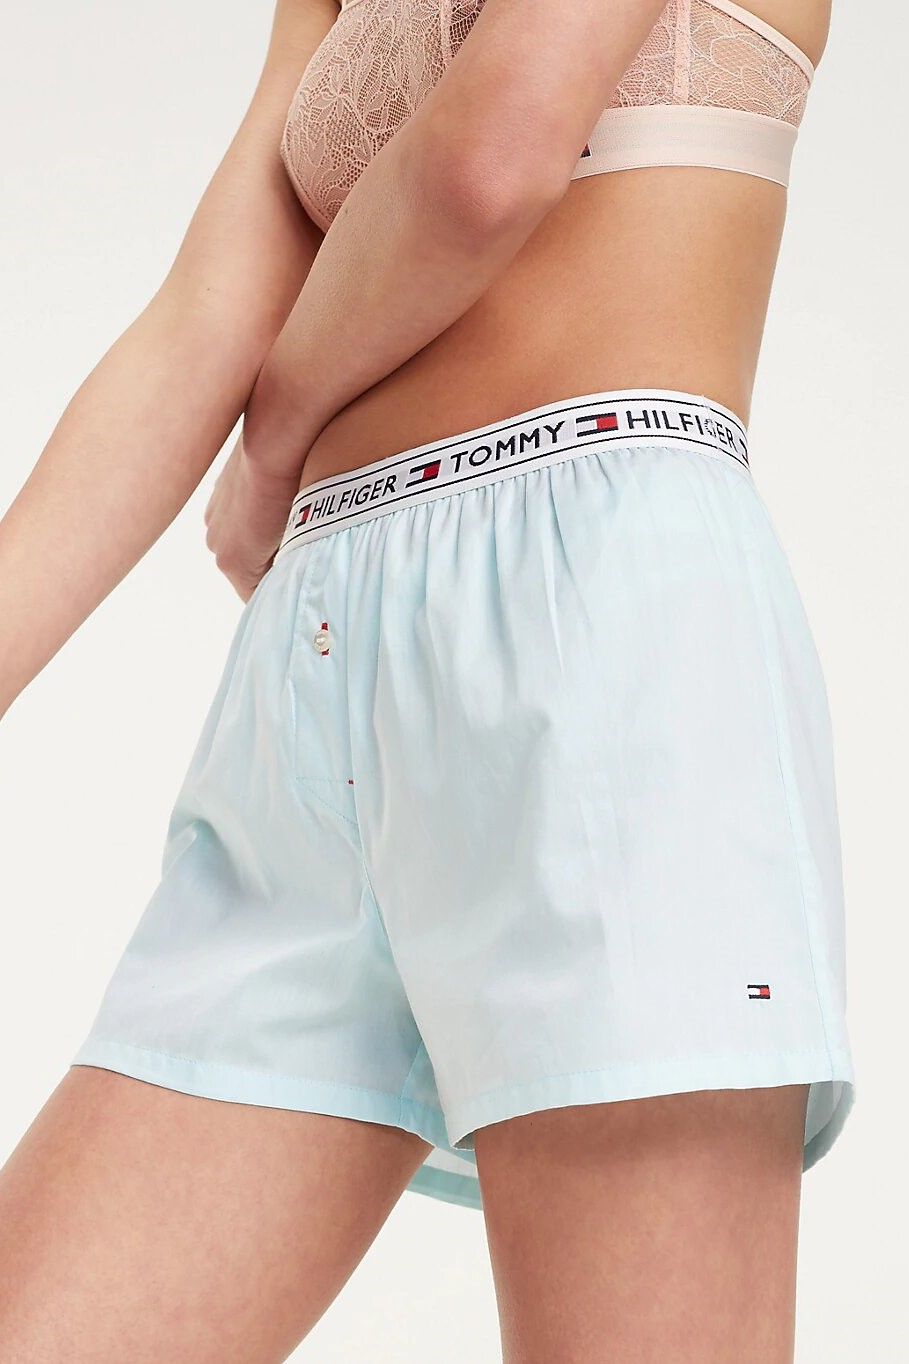 Tommy Hilfiger turquoise women´s household shorts Woven Short